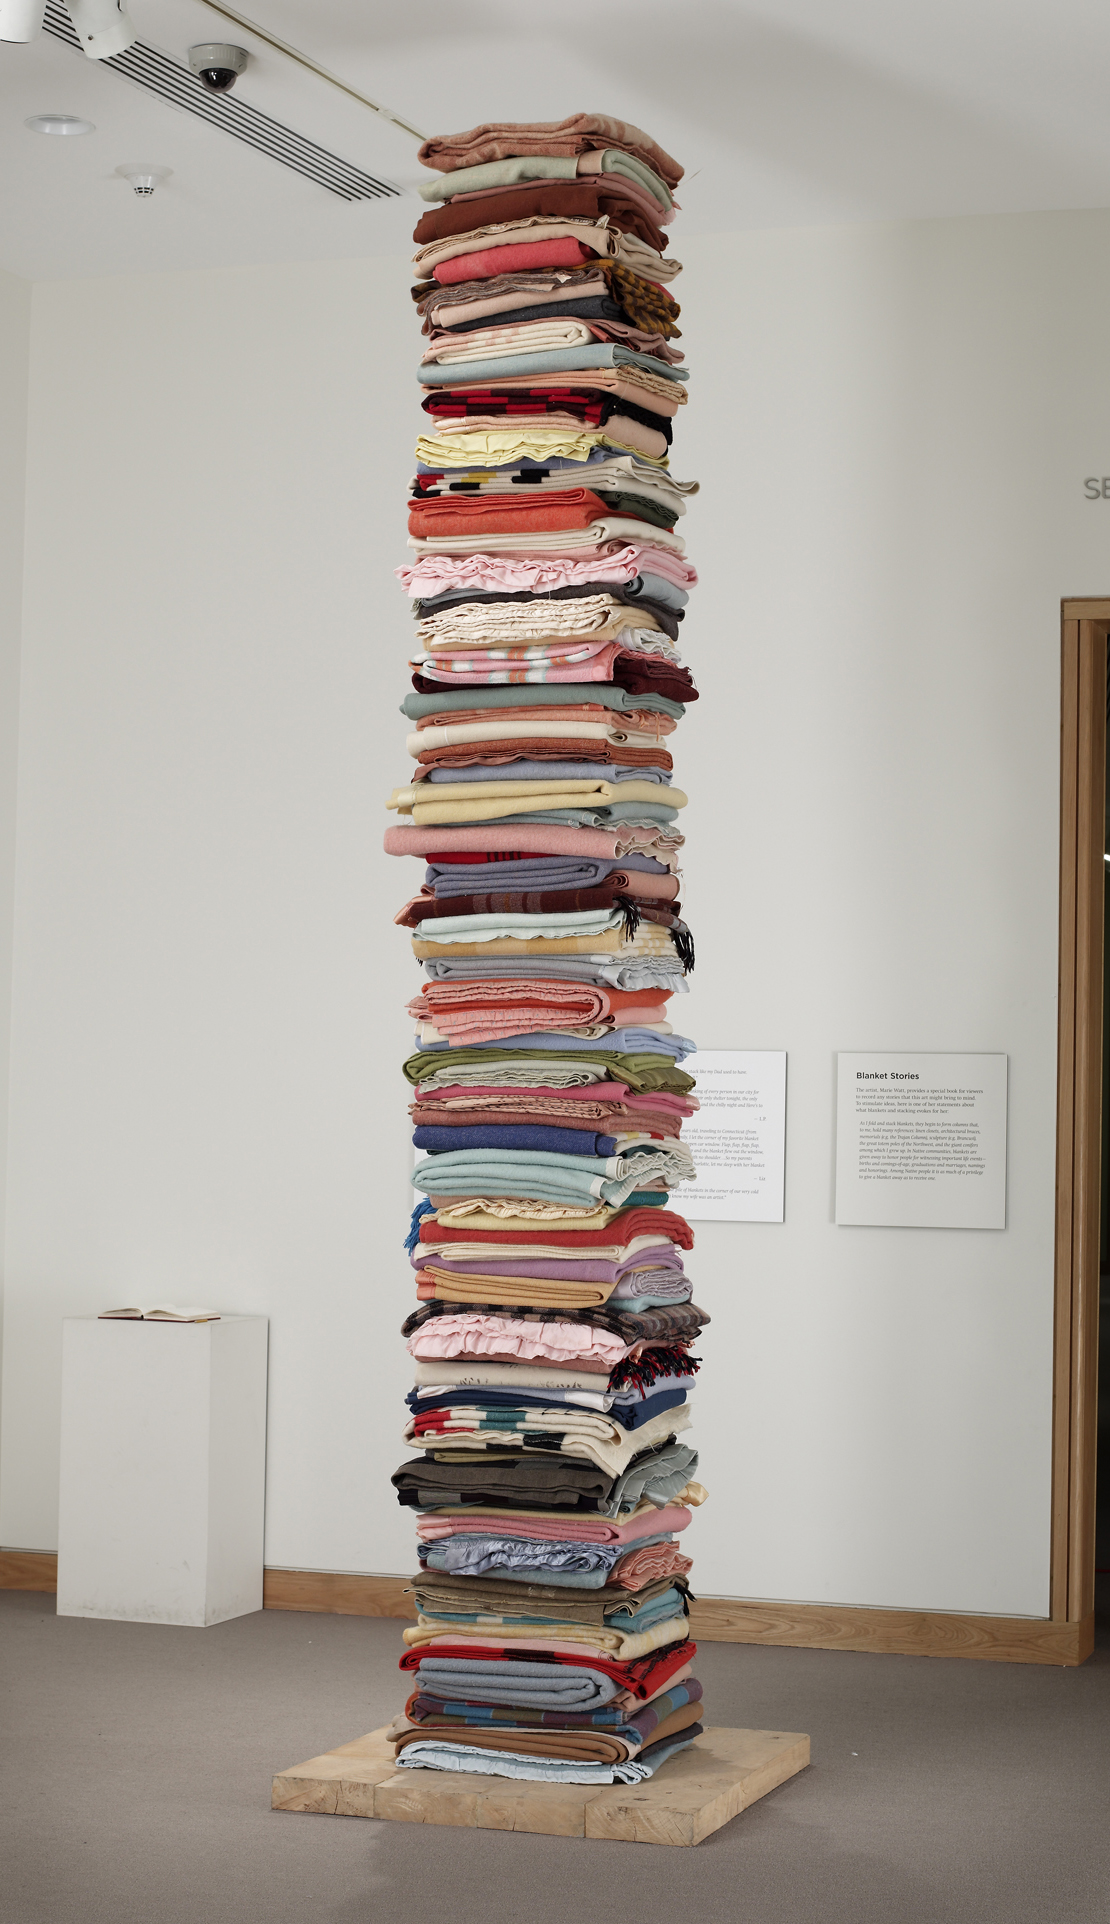 Object of the Week: Blanket Stories